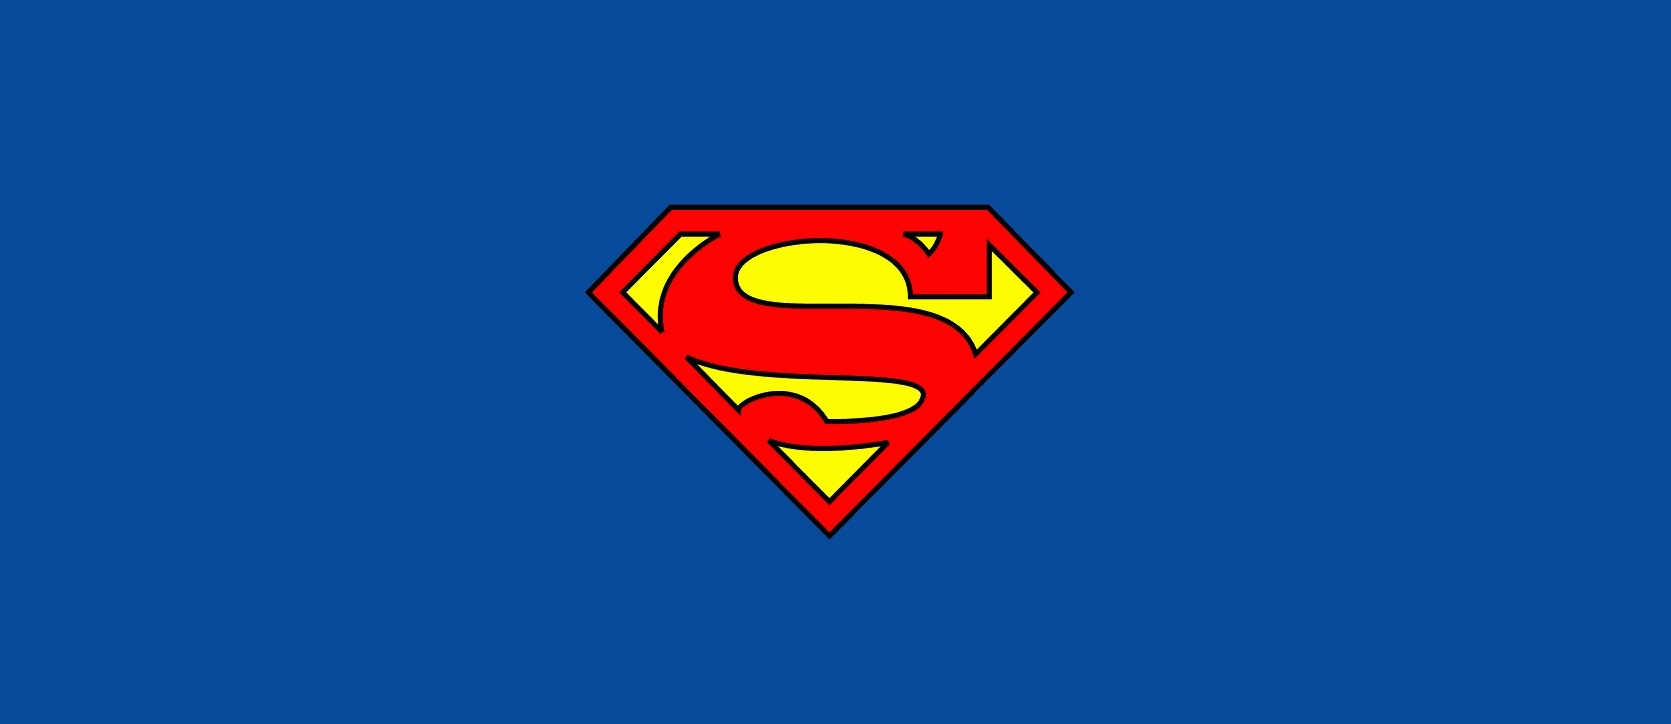 A picture of the superman logo on a blue background.